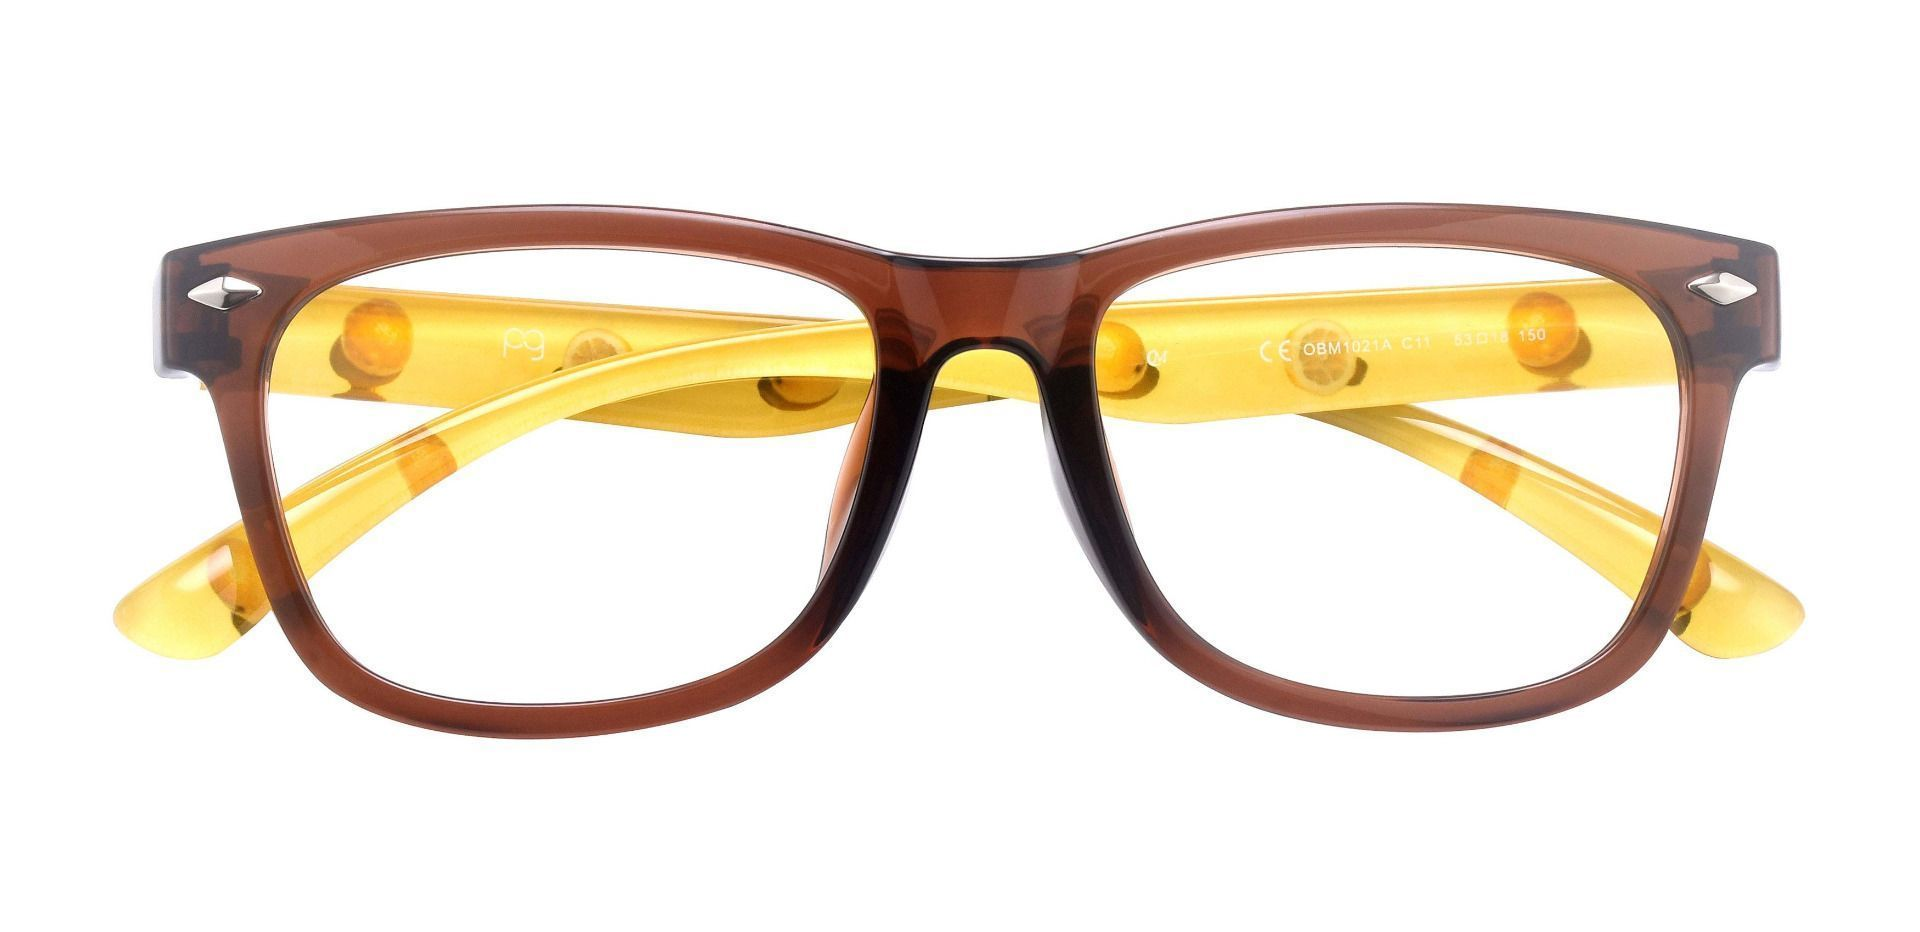 Tessa Classic Square Prescription Glasses - Yellow